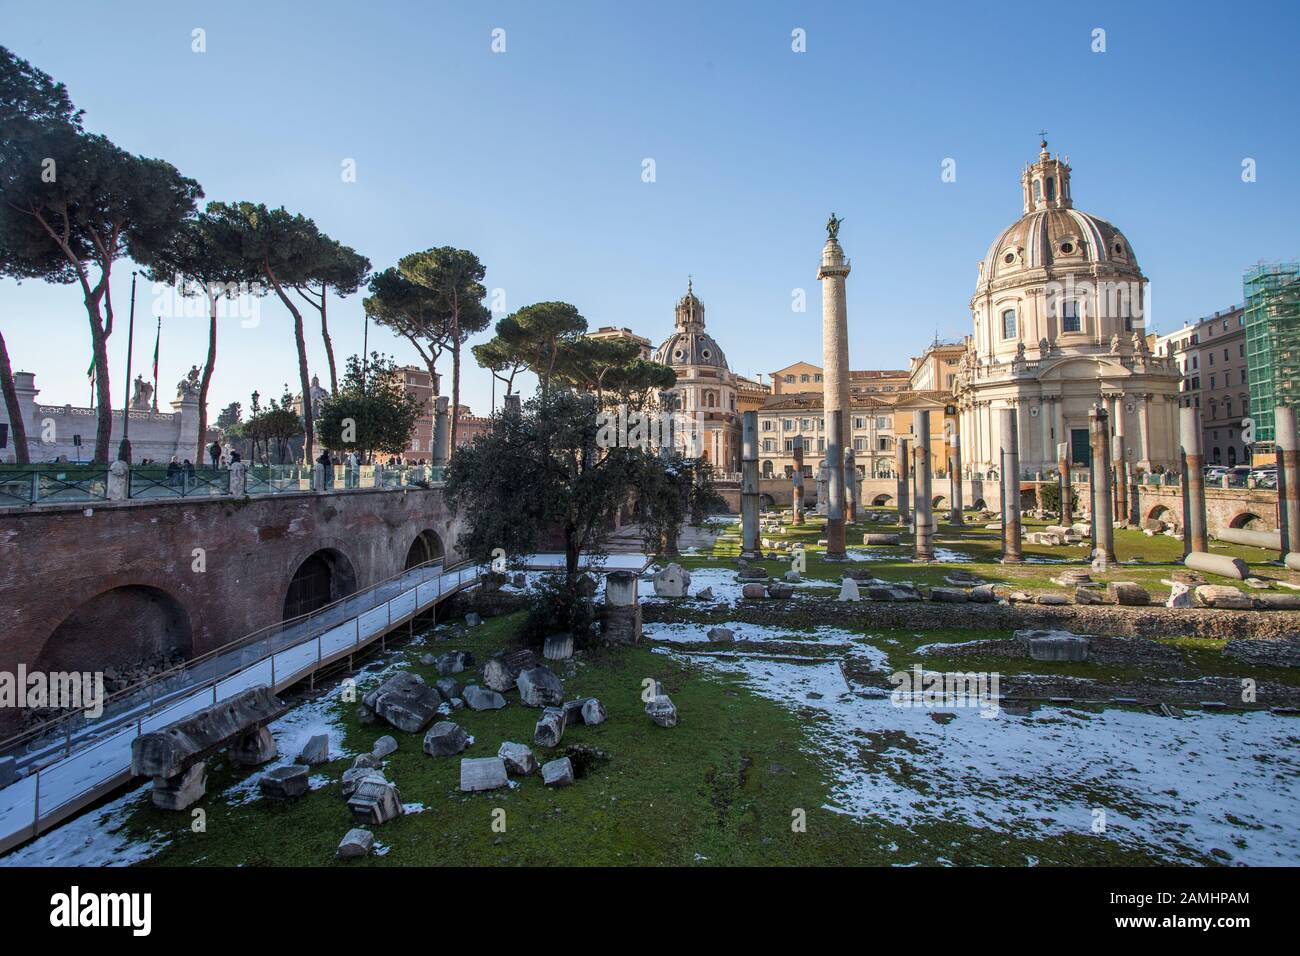 Rome, Italy, February 2018 - Snow covered Rome, winter tourism in capital city of Italy, famous travel destination in winter. Forum Romanum with snow. Stock Photo